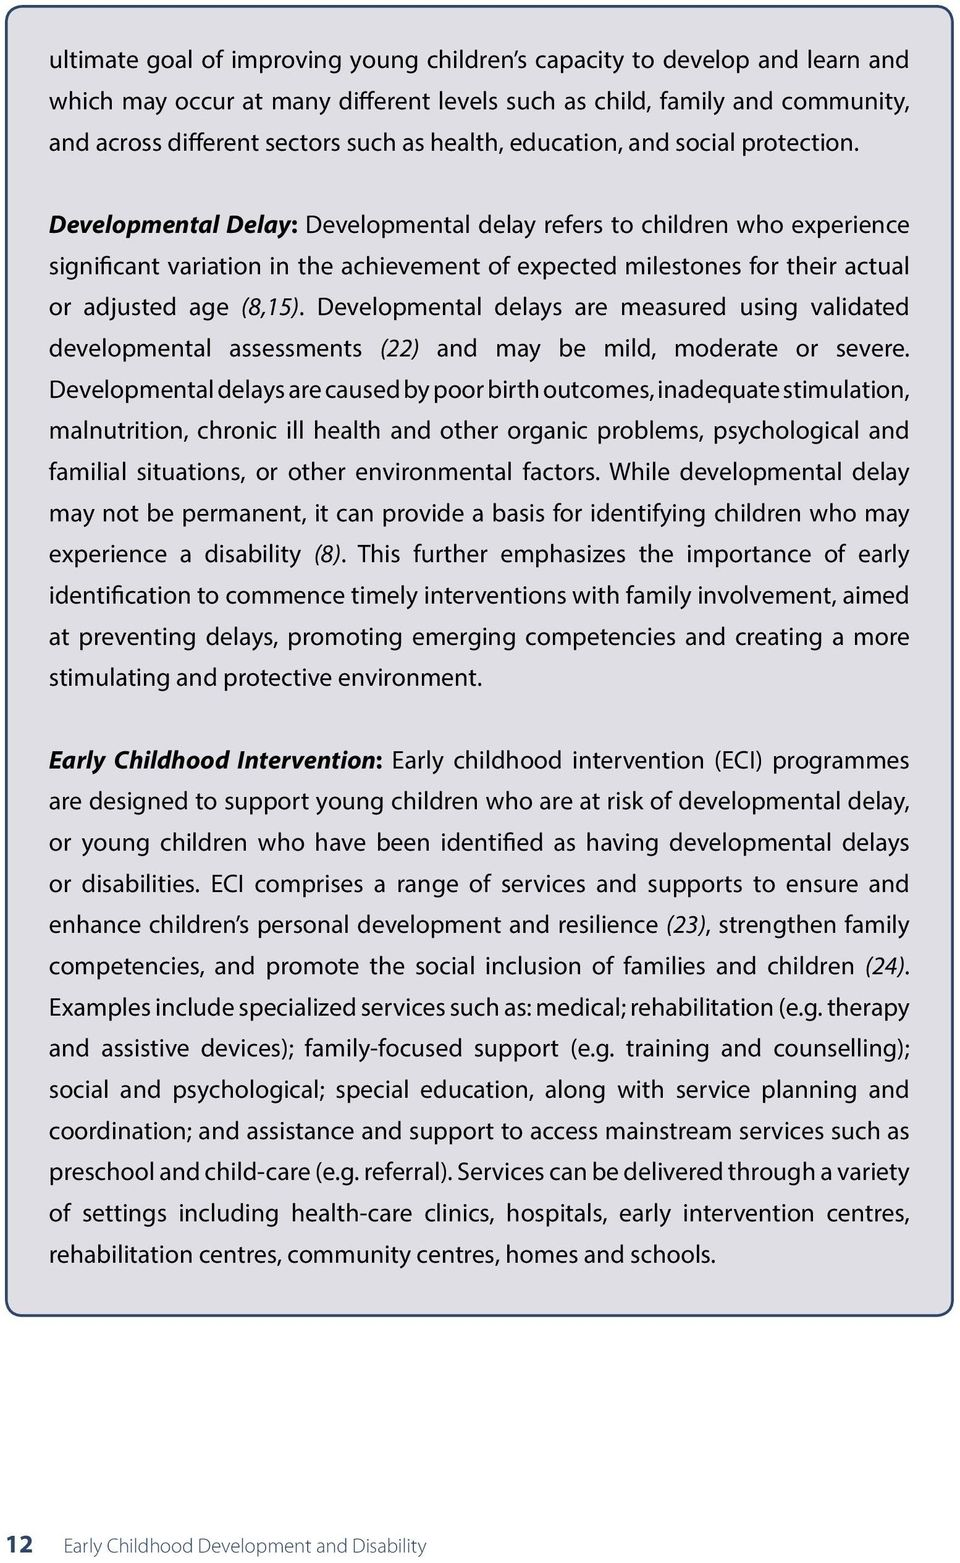 Developmental Delay: Developmental delay refers to children who experience significant variation in the achievement of expected milestones for their actual or adjusted age (8,15).